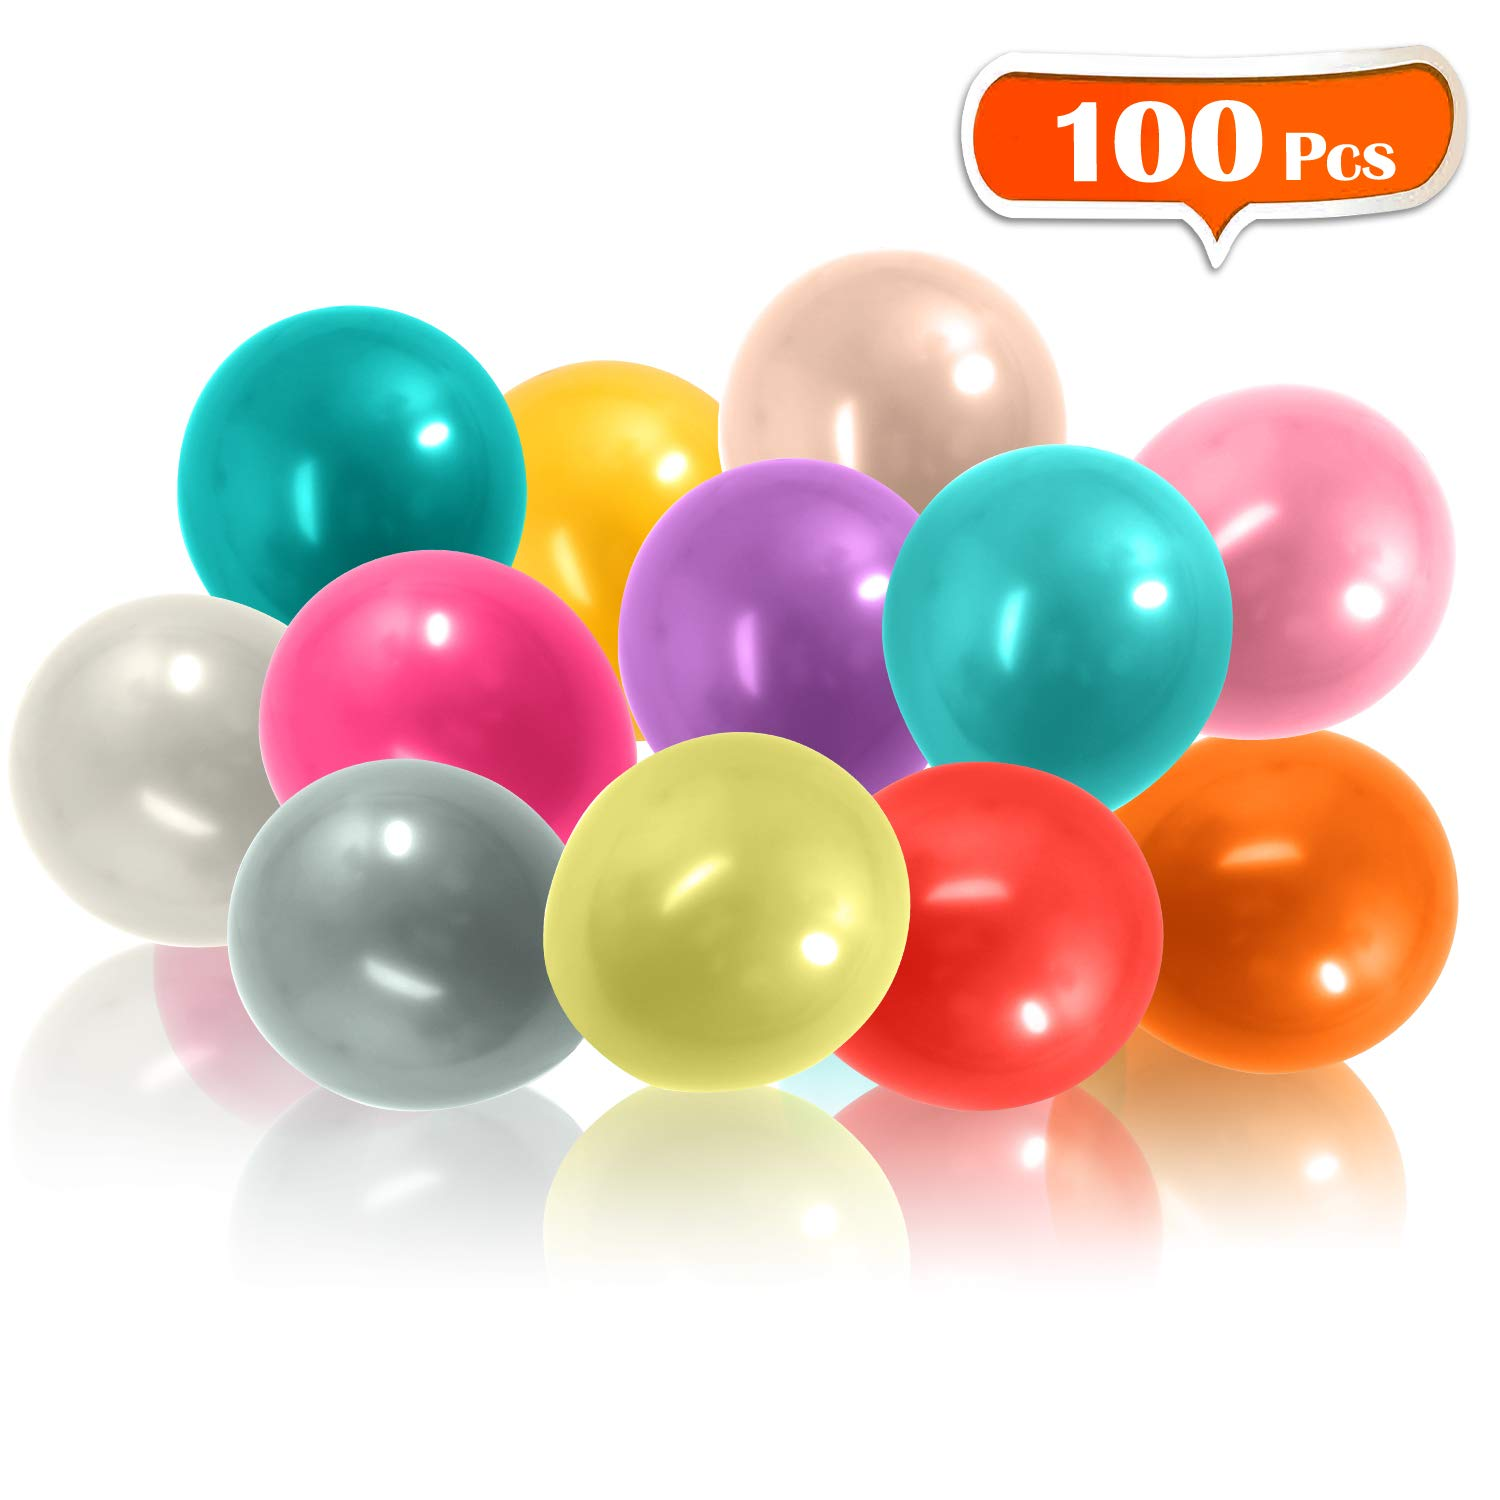 amazon com agptek 100 packs assorted colored balloons with premium